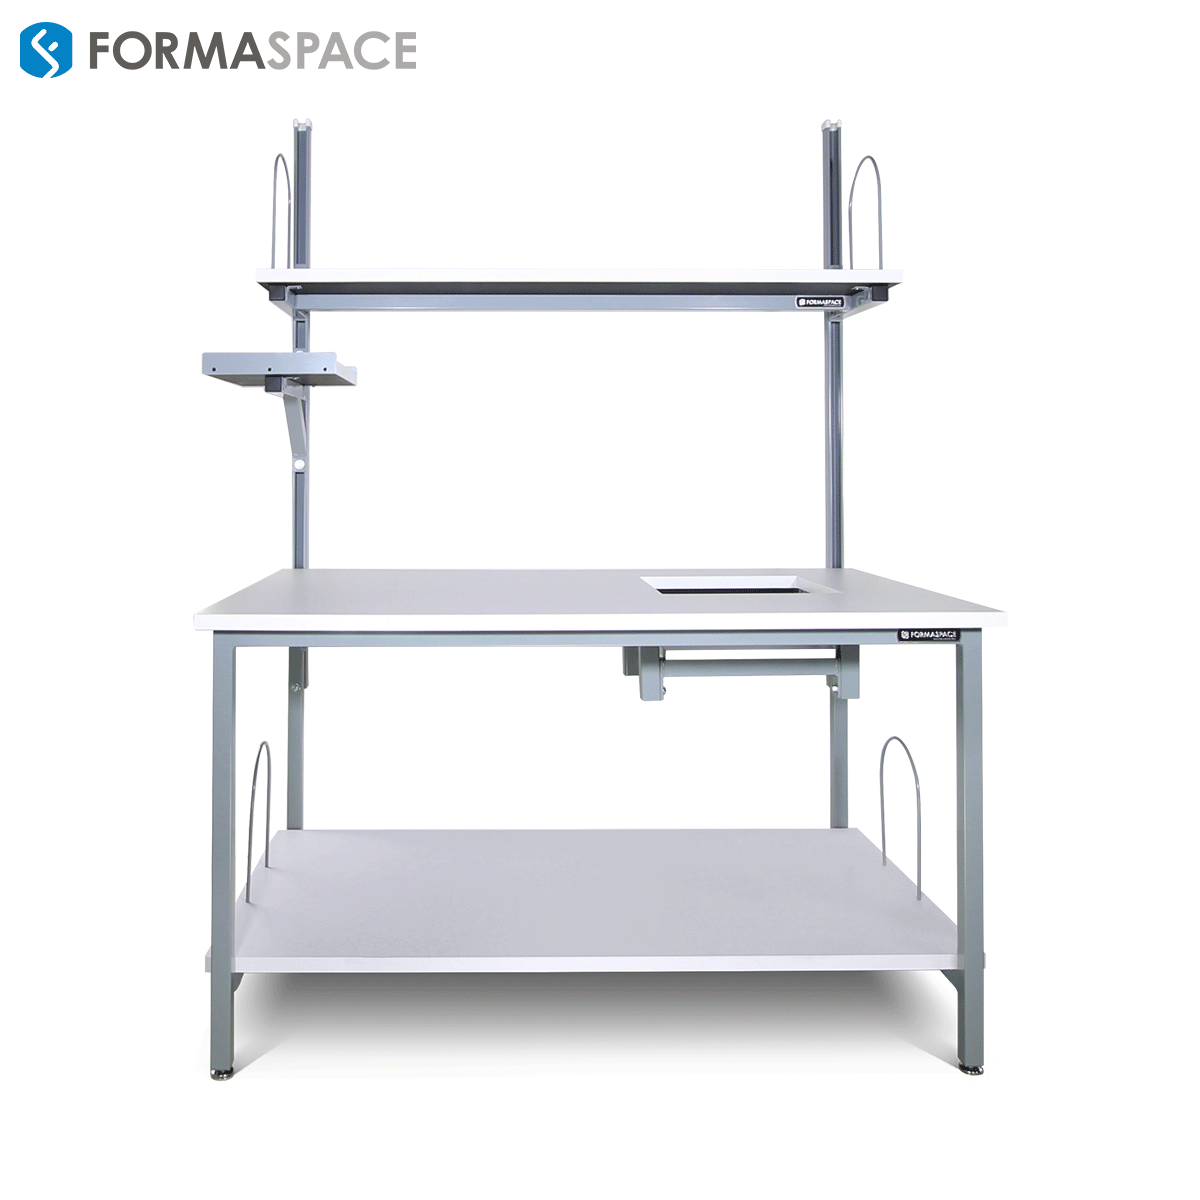 workbench for printing company